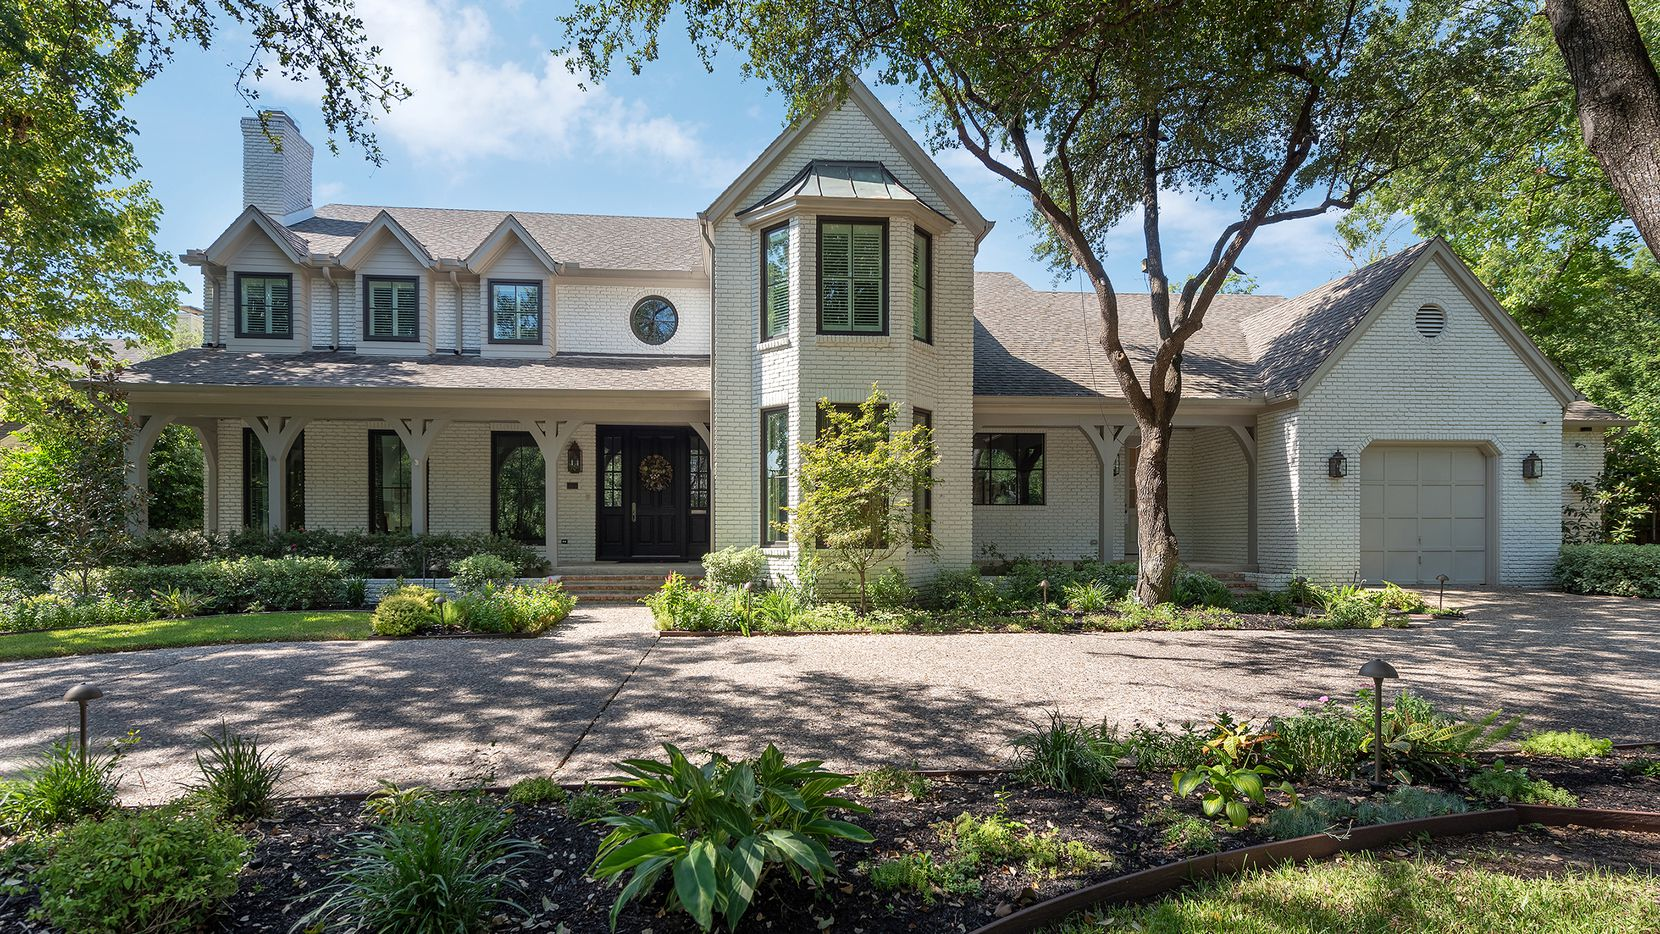 The residence at 5516 Stonegate Drive in Devonshire has five bedrooms and a pool.